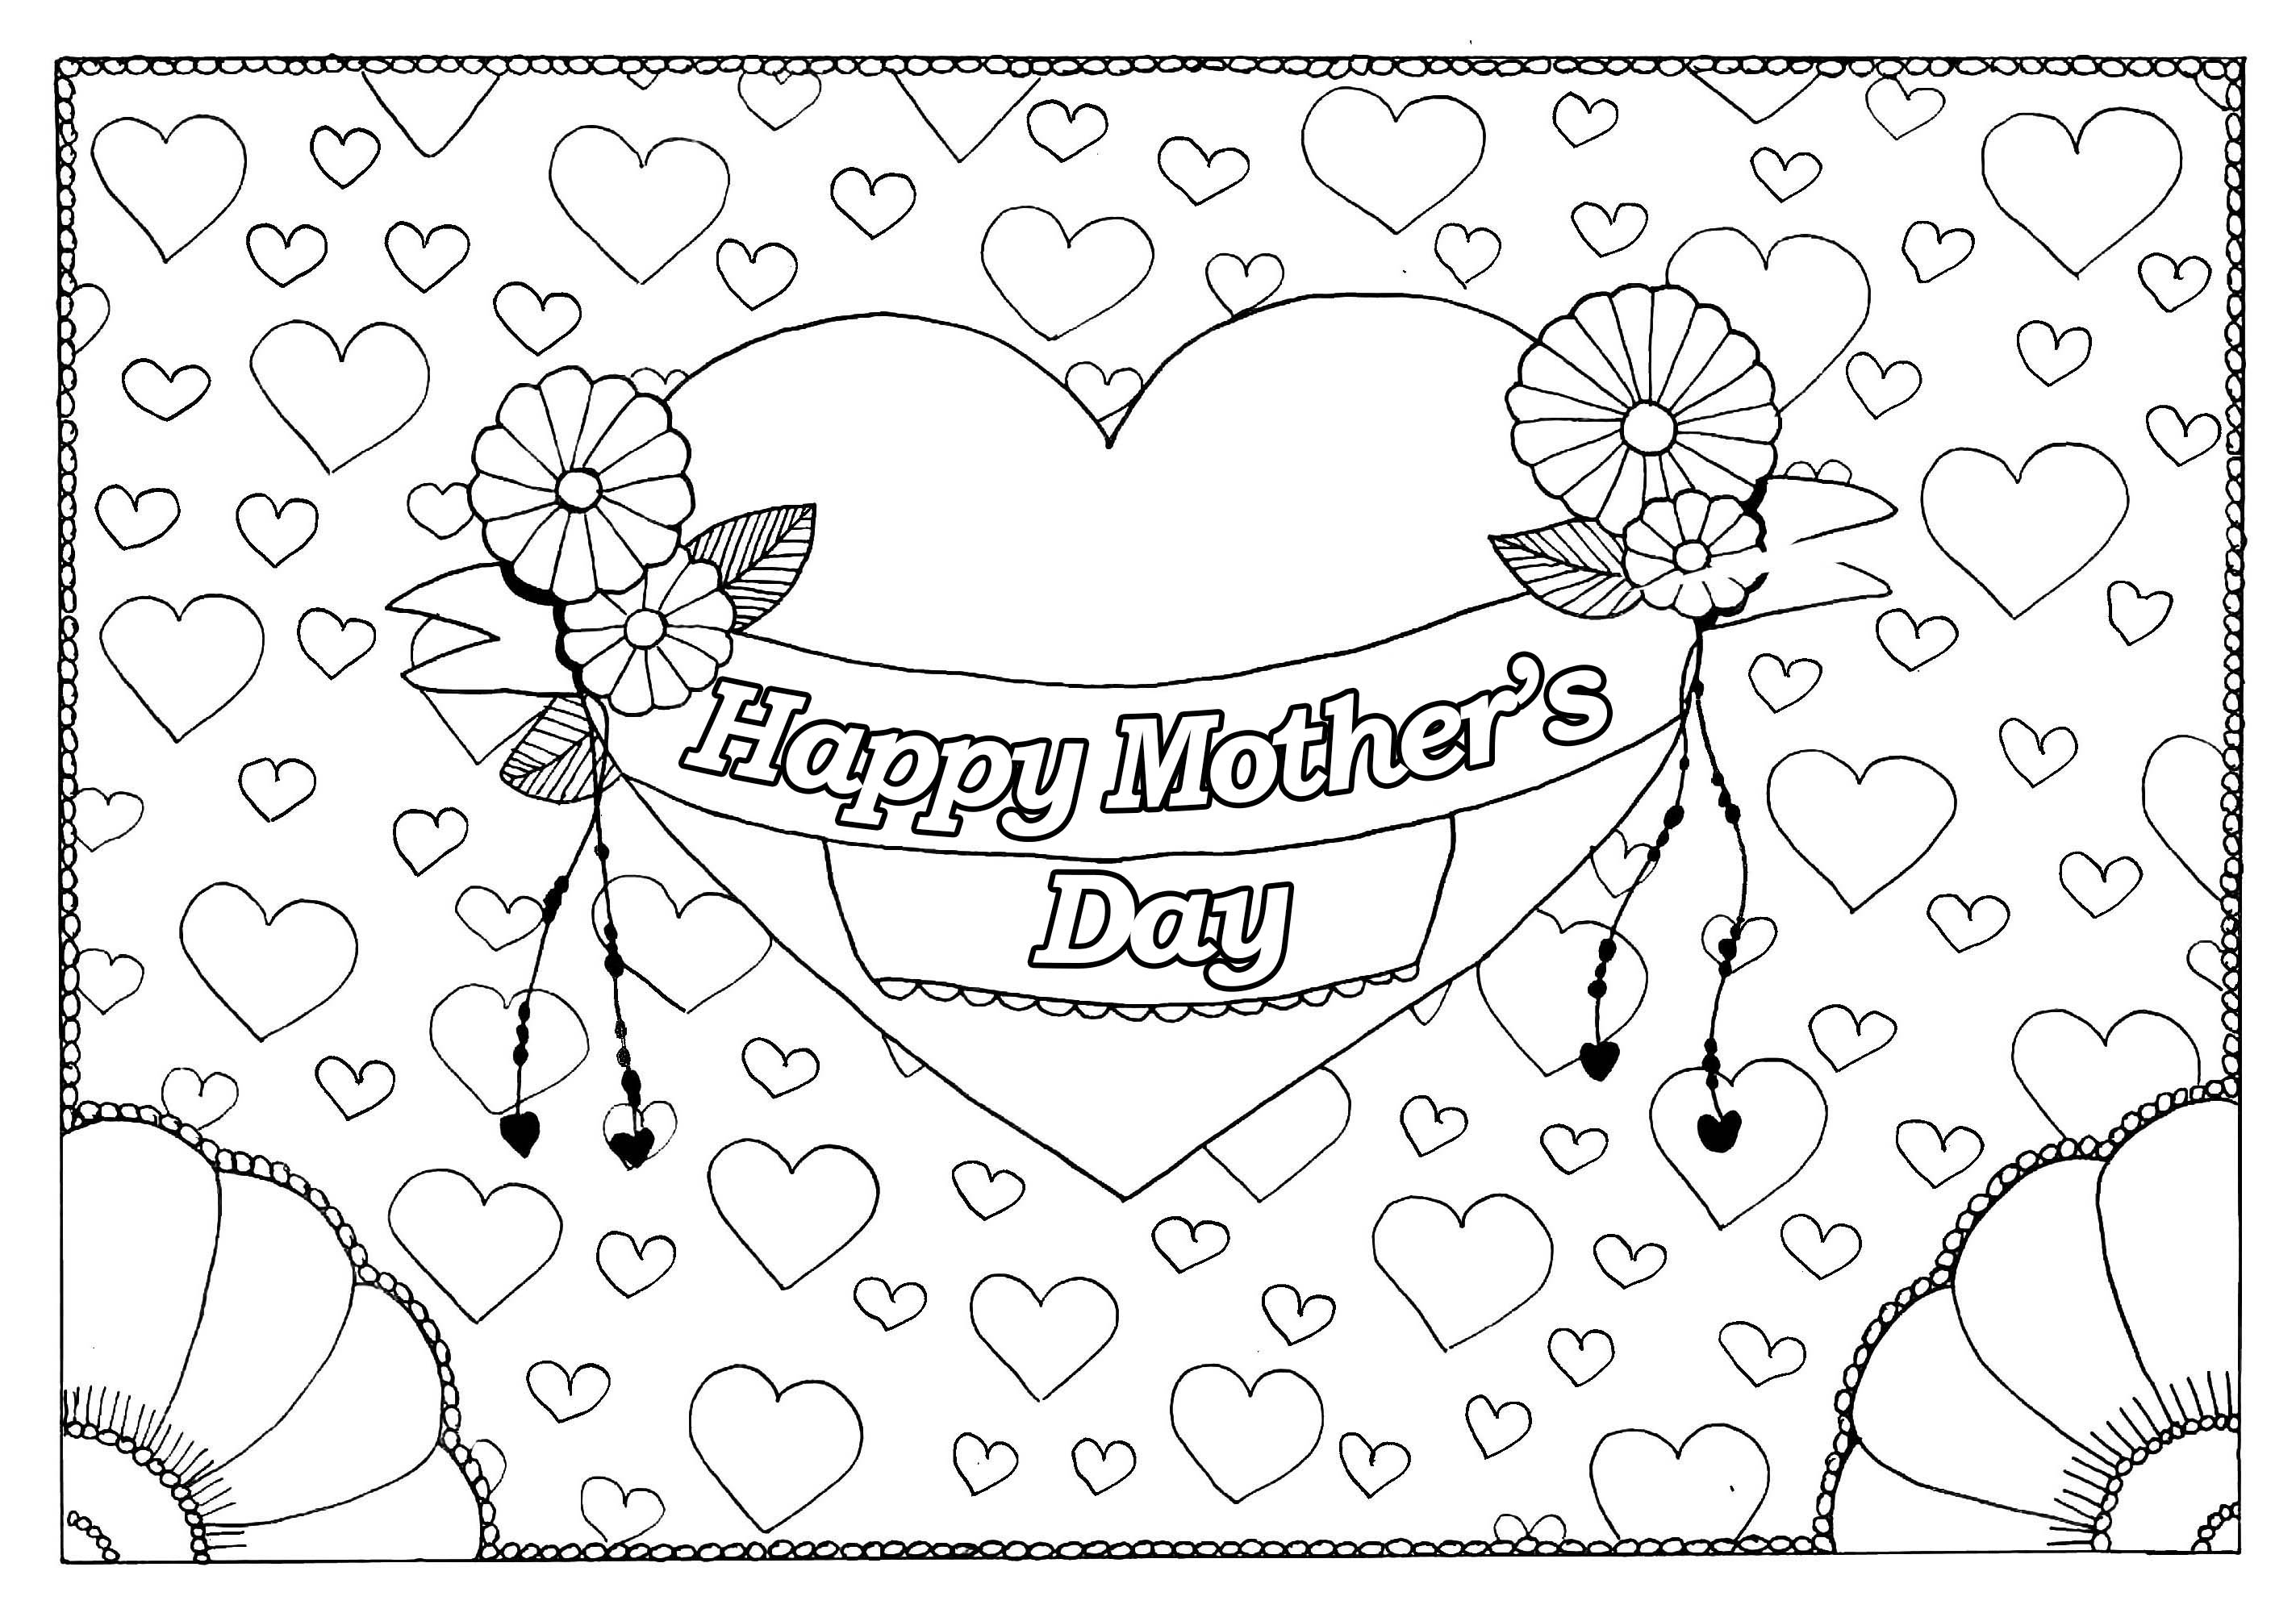 Mother's day coloring page : Big & little hearts